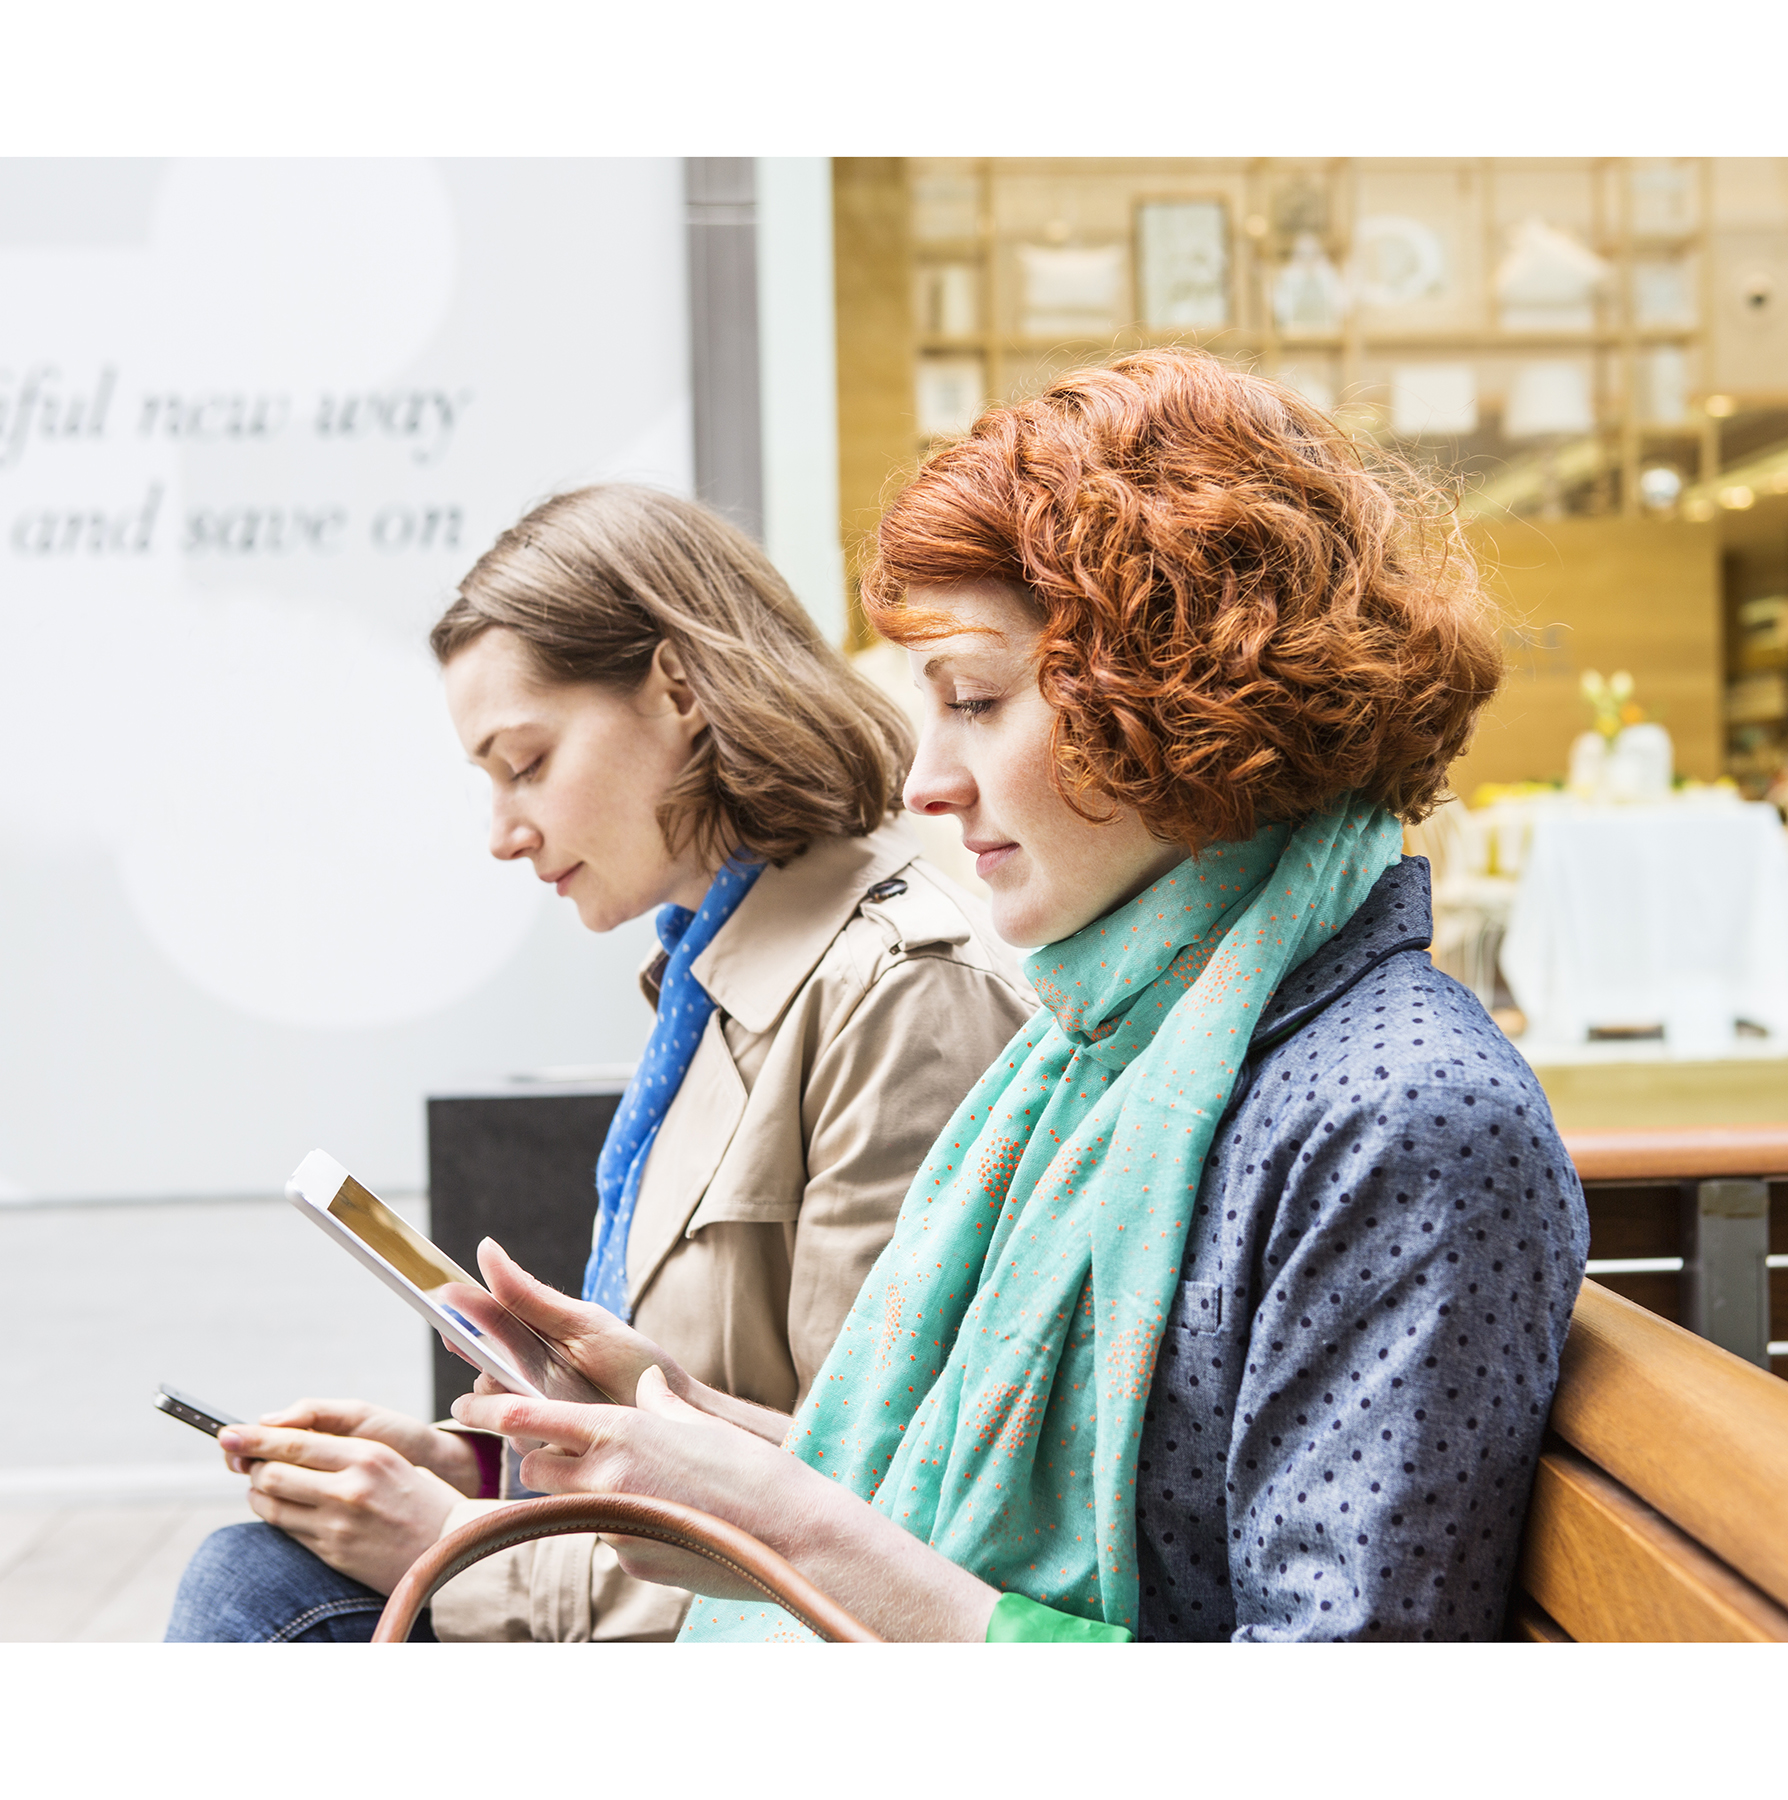 Women sitting looking at phones